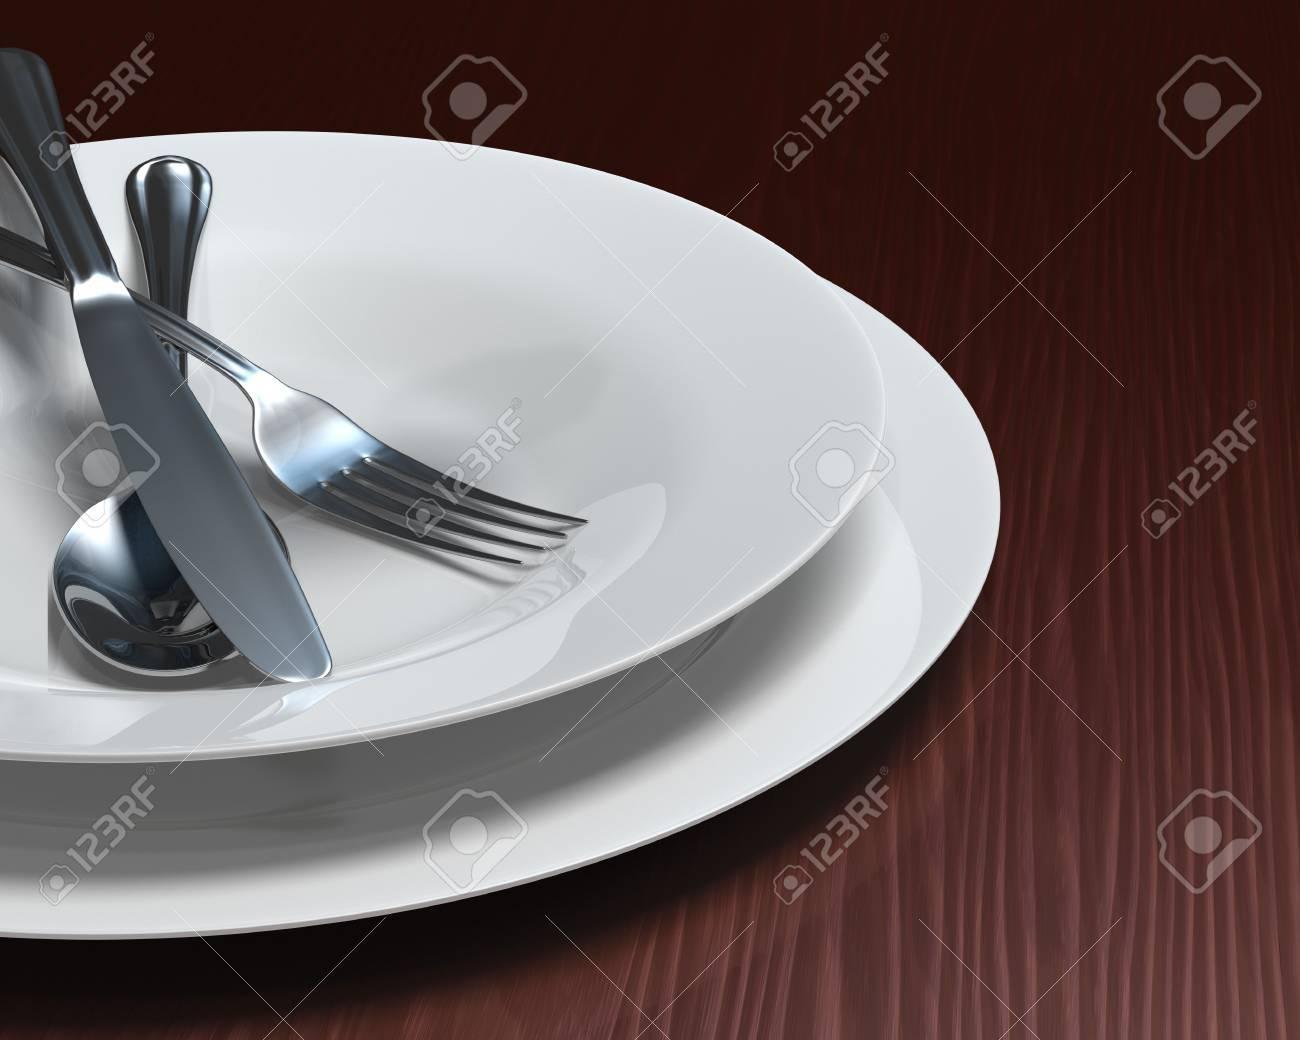 Plate and soup bowl with cutlery on rich, dark woodgrain surface. Stock Photo - 5865457